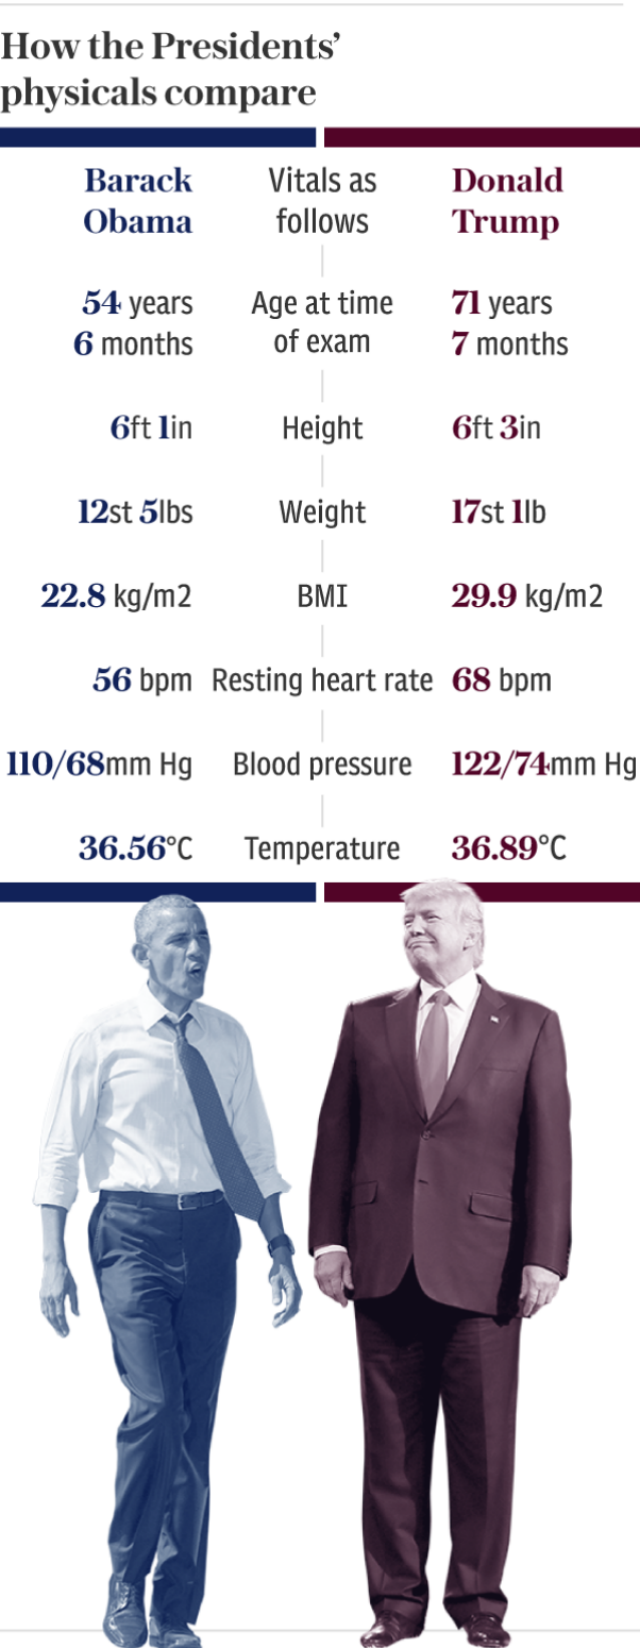 How the Presidents' physicals compare